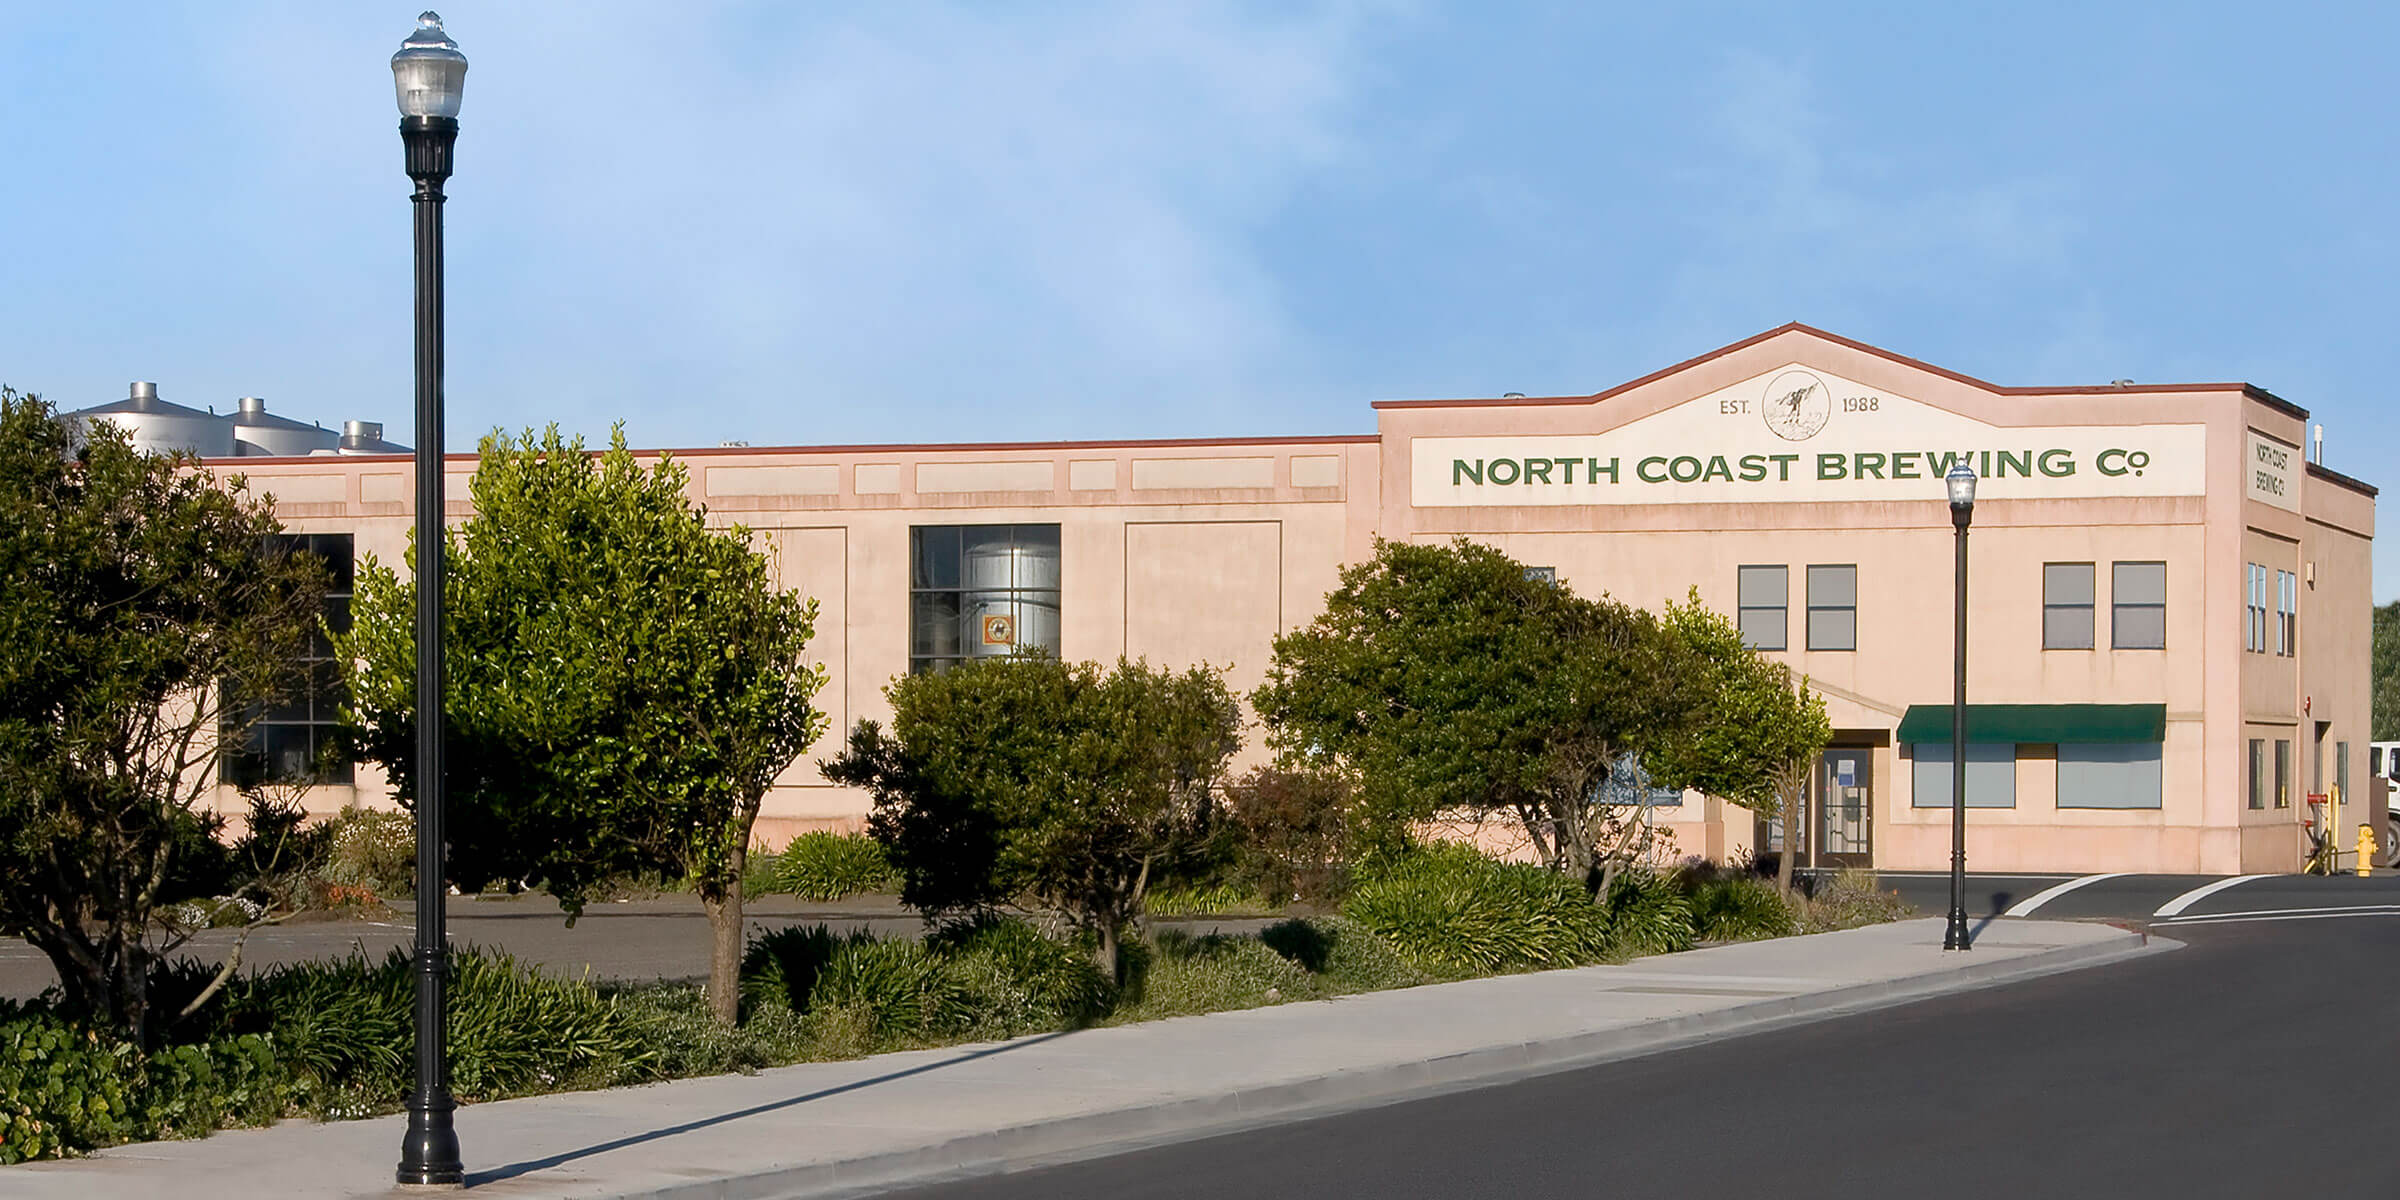 Outside North Coast Brewing Co. in Fort Bragg, California